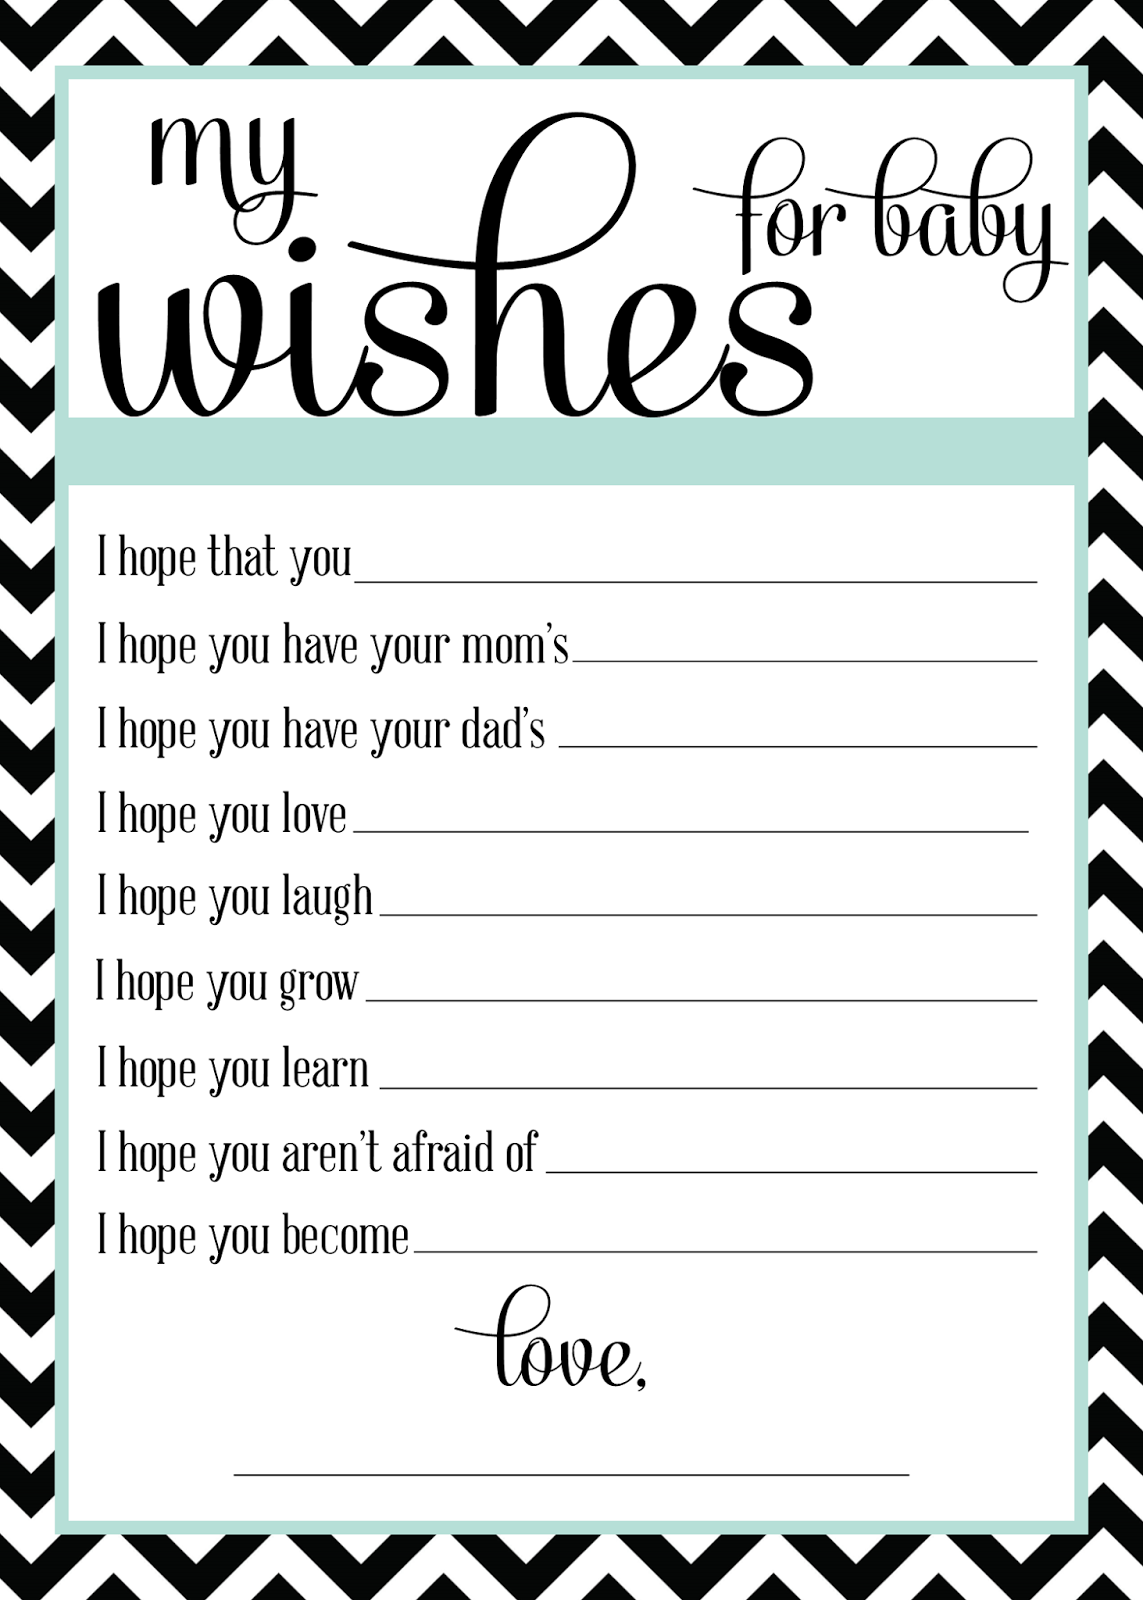 Sugar queens wishes for baby for Wishes for baby printable template